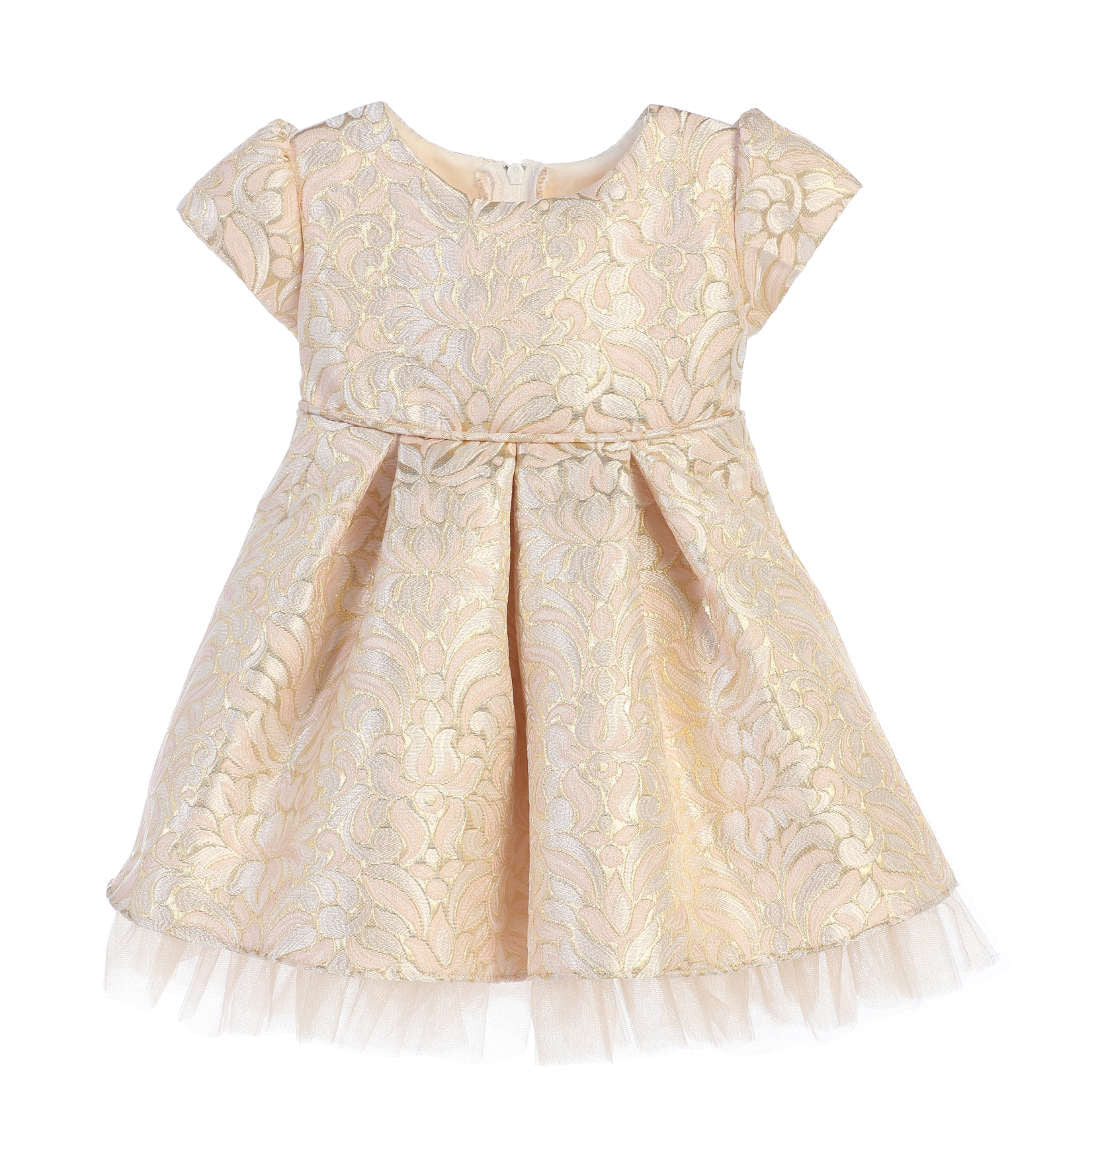 Sweet Kids Ornate Pleated Jacquard Tulle Dress - Blush, SK670